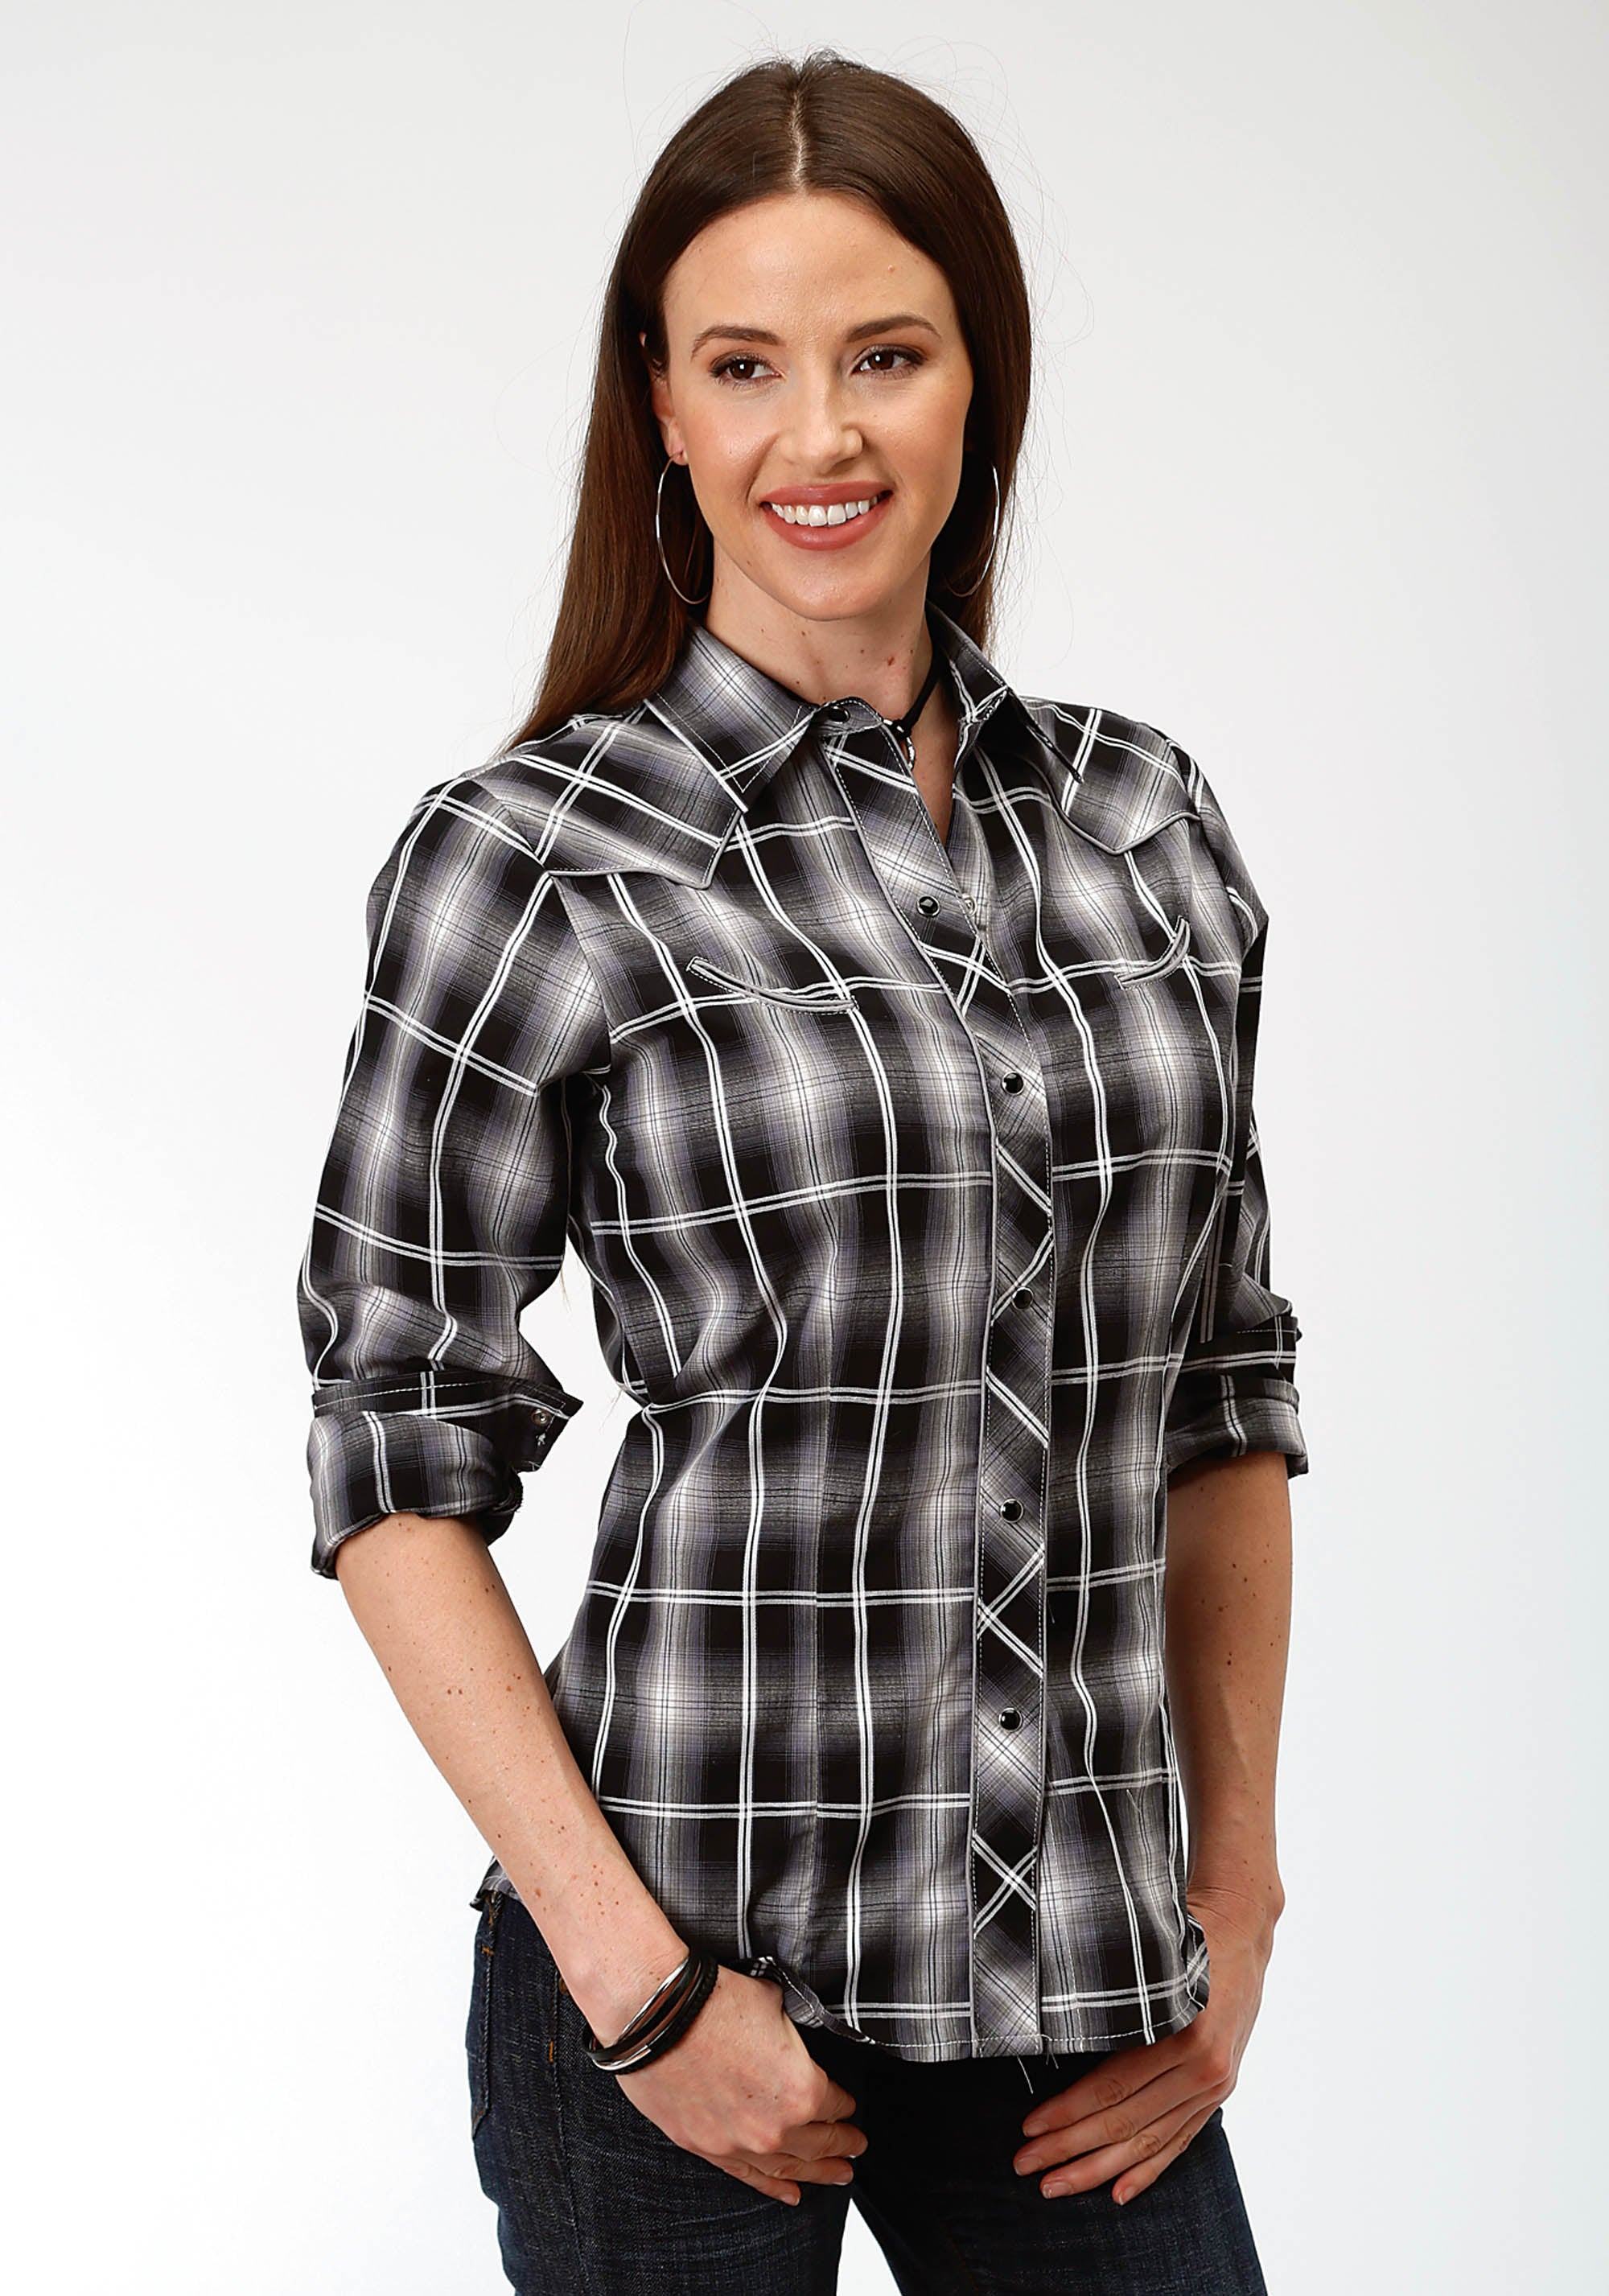 ROPER WOMENS BLACK 0133 BLACK, GREY, & WHITE PLAID KARMAN SPECIAL STYLES LONG SLEEVE